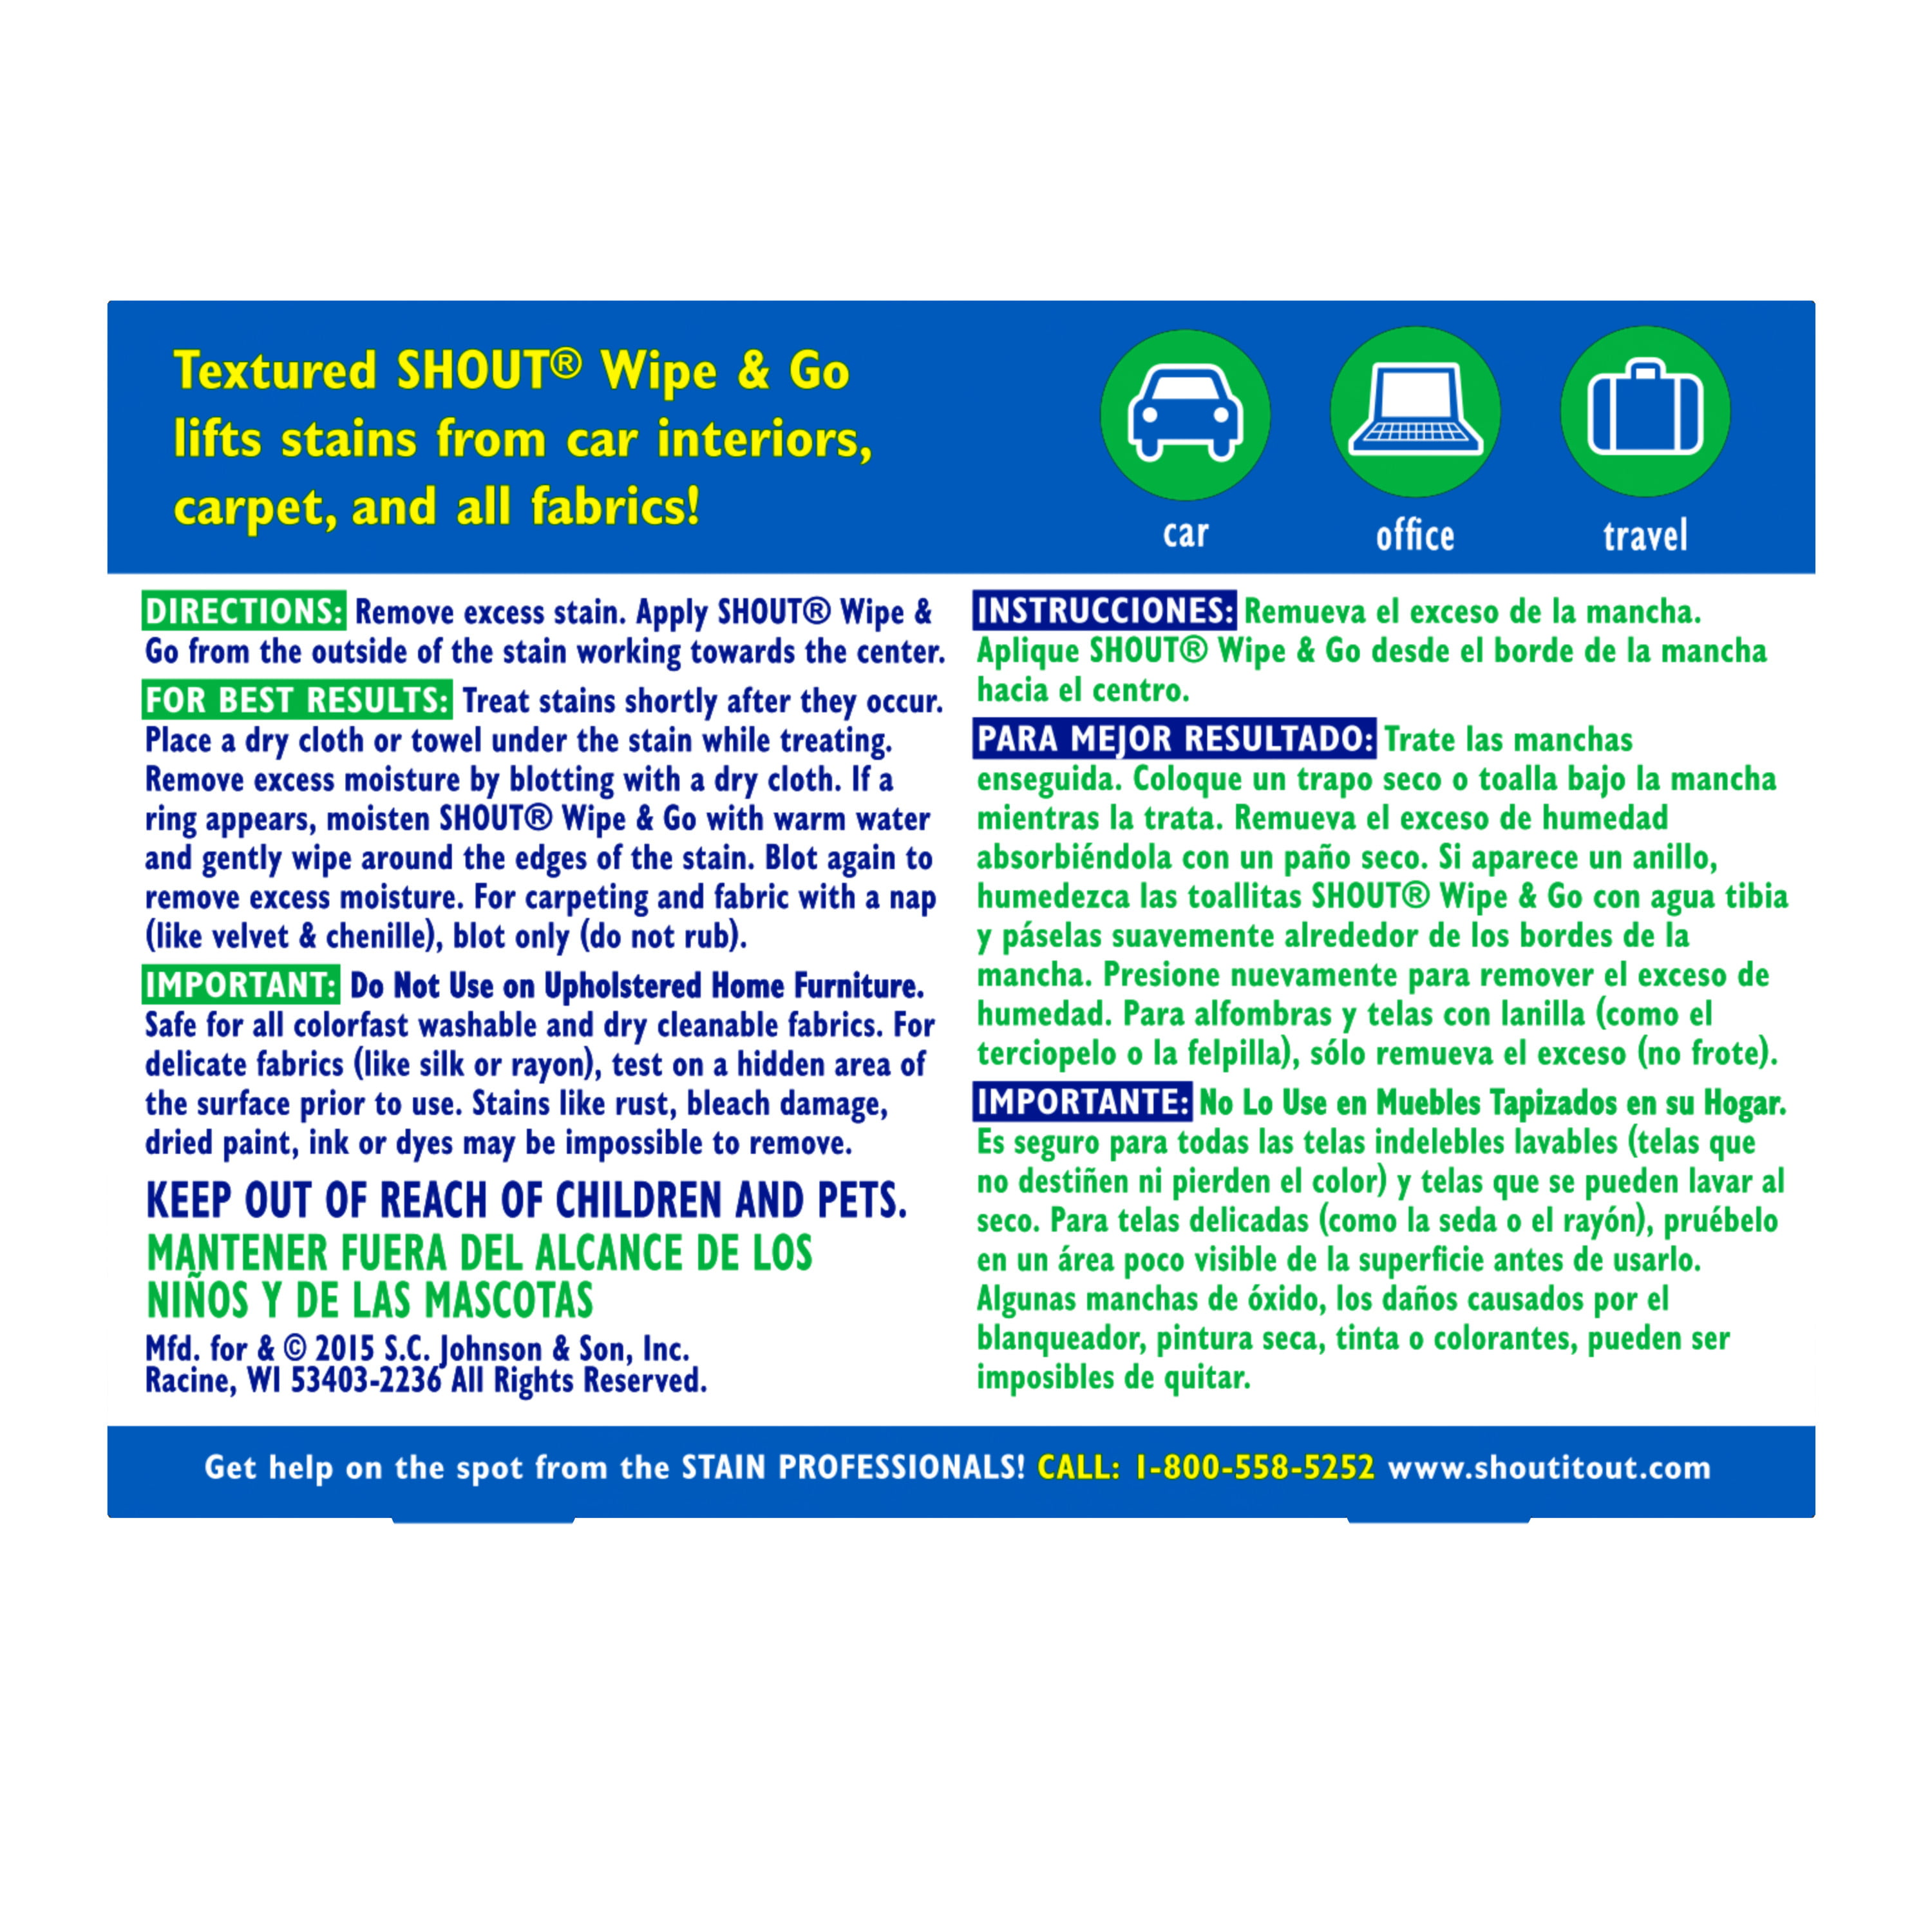 Pack Of 12 Shout Wipes 12-Count